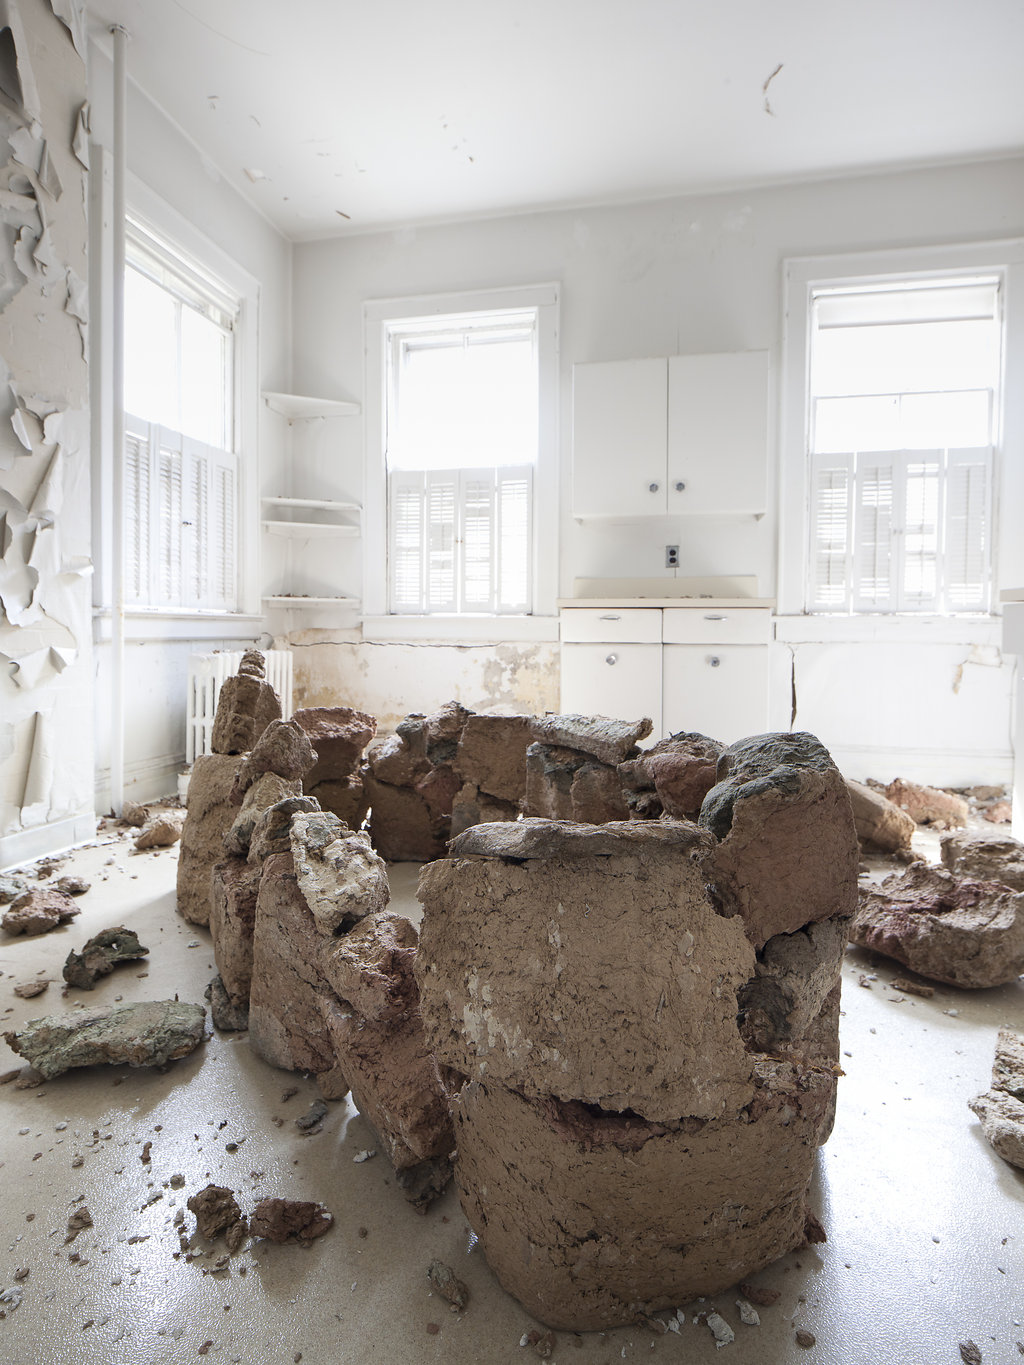 Dissolution,  paper pulp, dimensions variable, 2016. Site specific work for Governors island Art fair 2016.